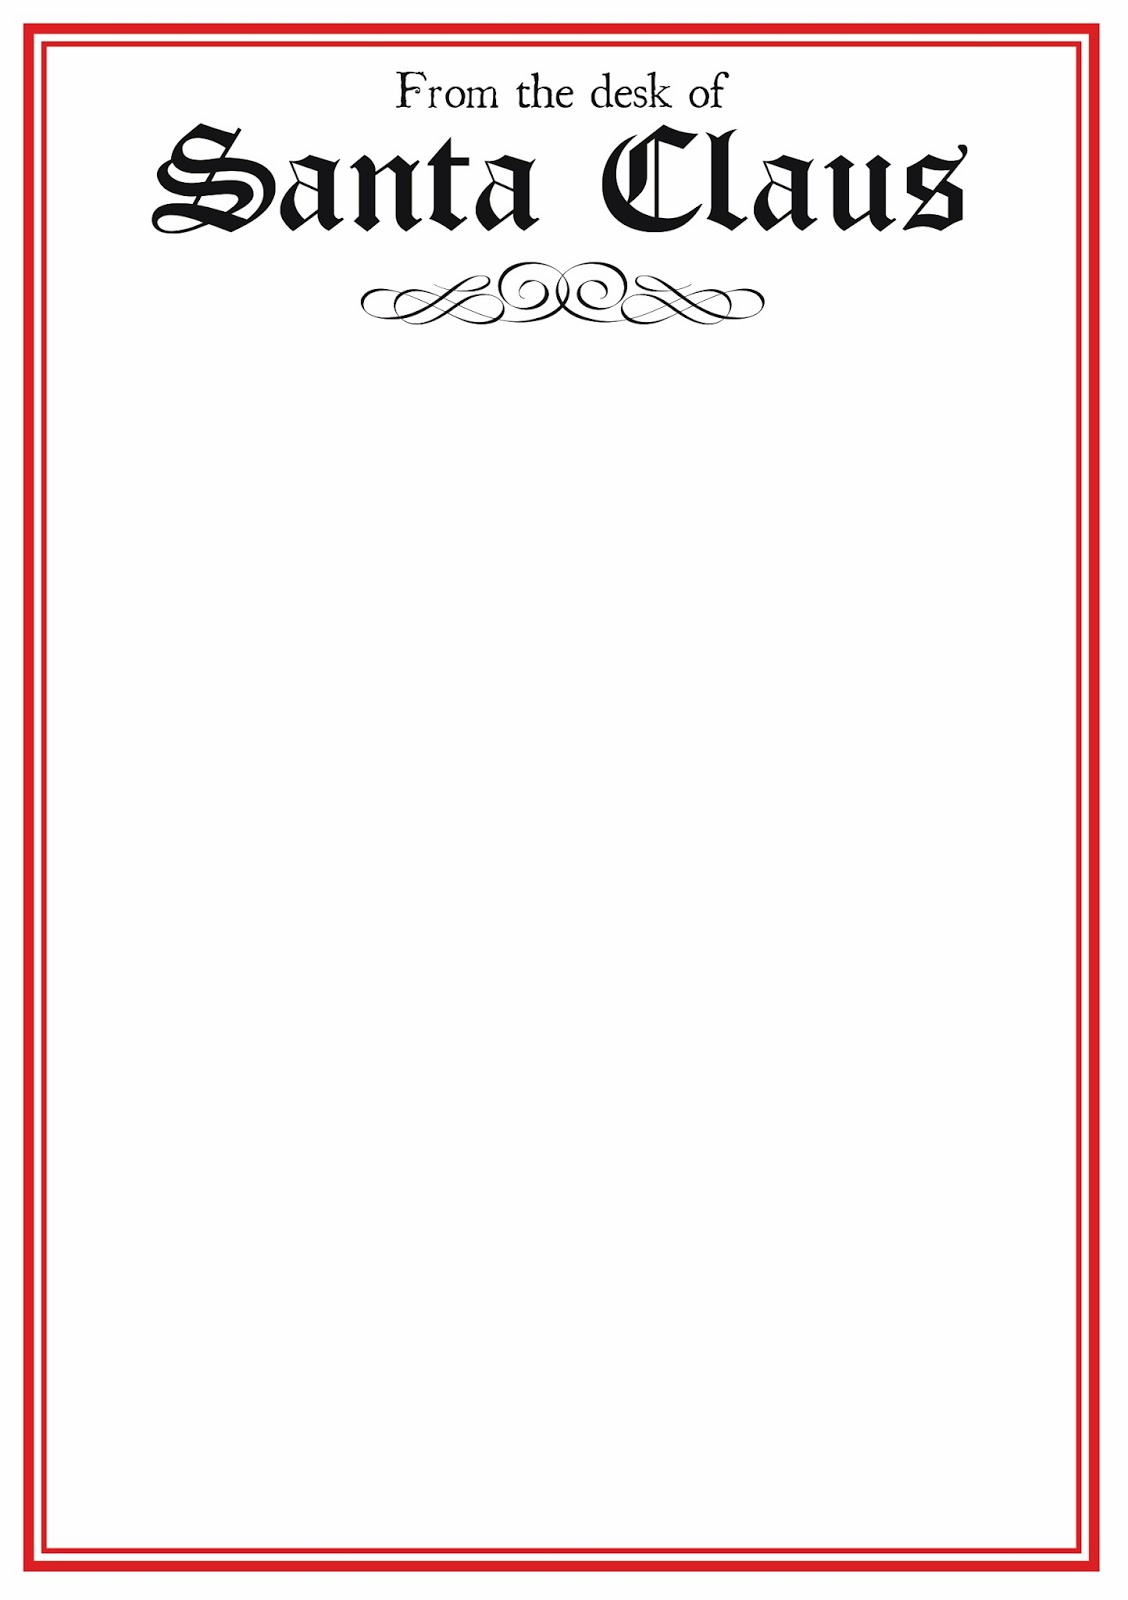 Free Printable Letter From Santa Word Template Samples | Letter - Free Printable Letterhead Templates